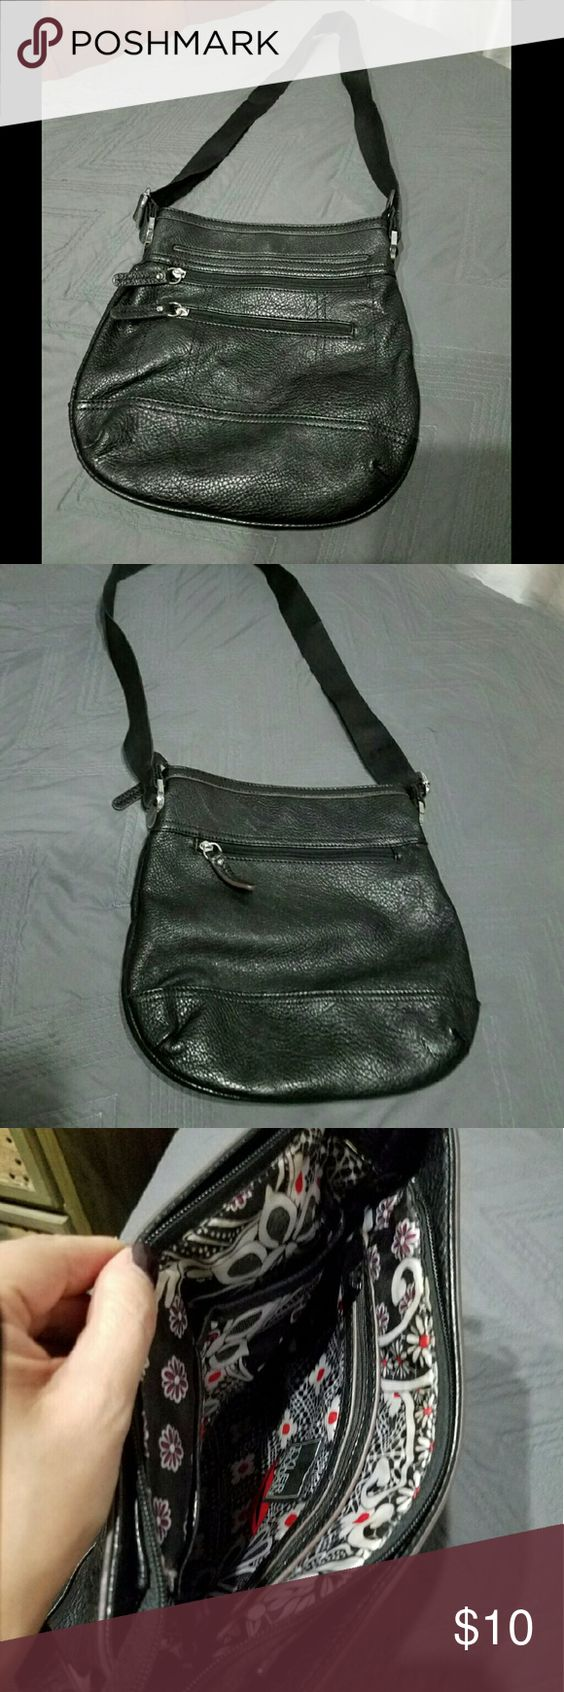 Tyler Rodan Purse Black gently used black purse. The purse has a lot of pockets and an adjustable strap. Dimensions are approx 11L x 10H. Purse has a couple small scuffs but is in otherwise good condition. Bags Shoulder Bags